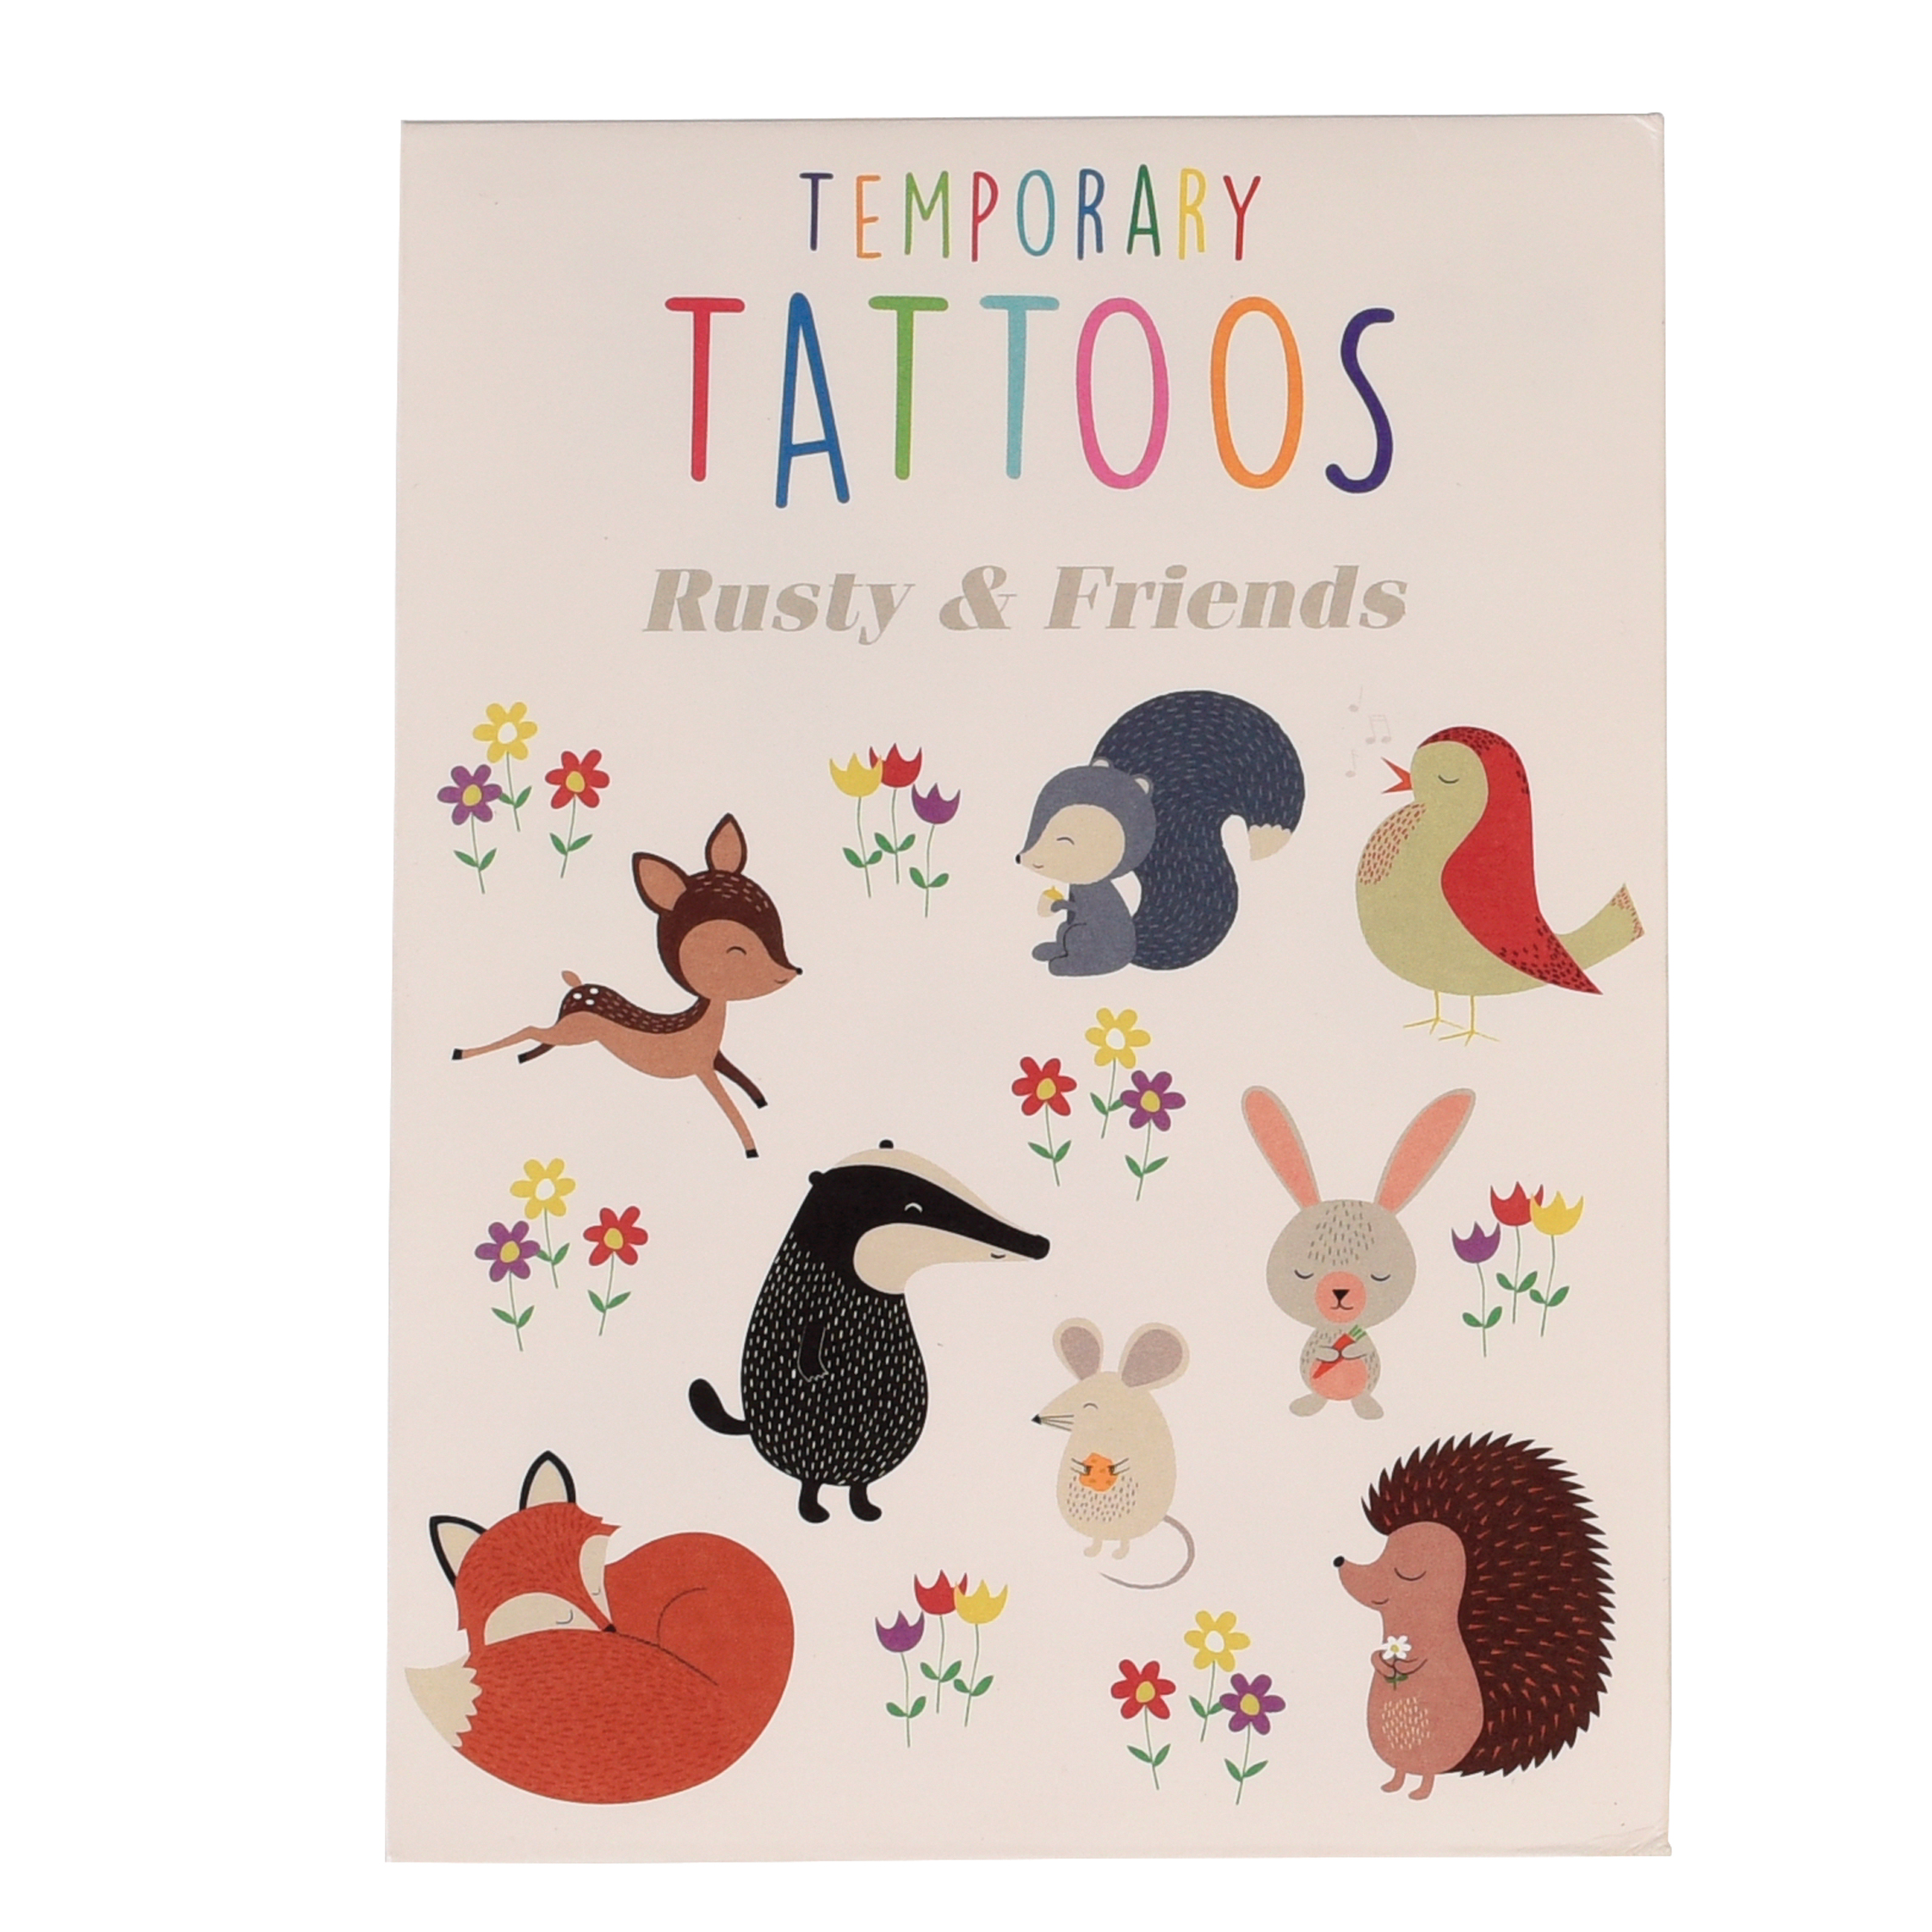 RUSTY & FRIENDS TEMPORARY TATTOOS (2 SHEETS)